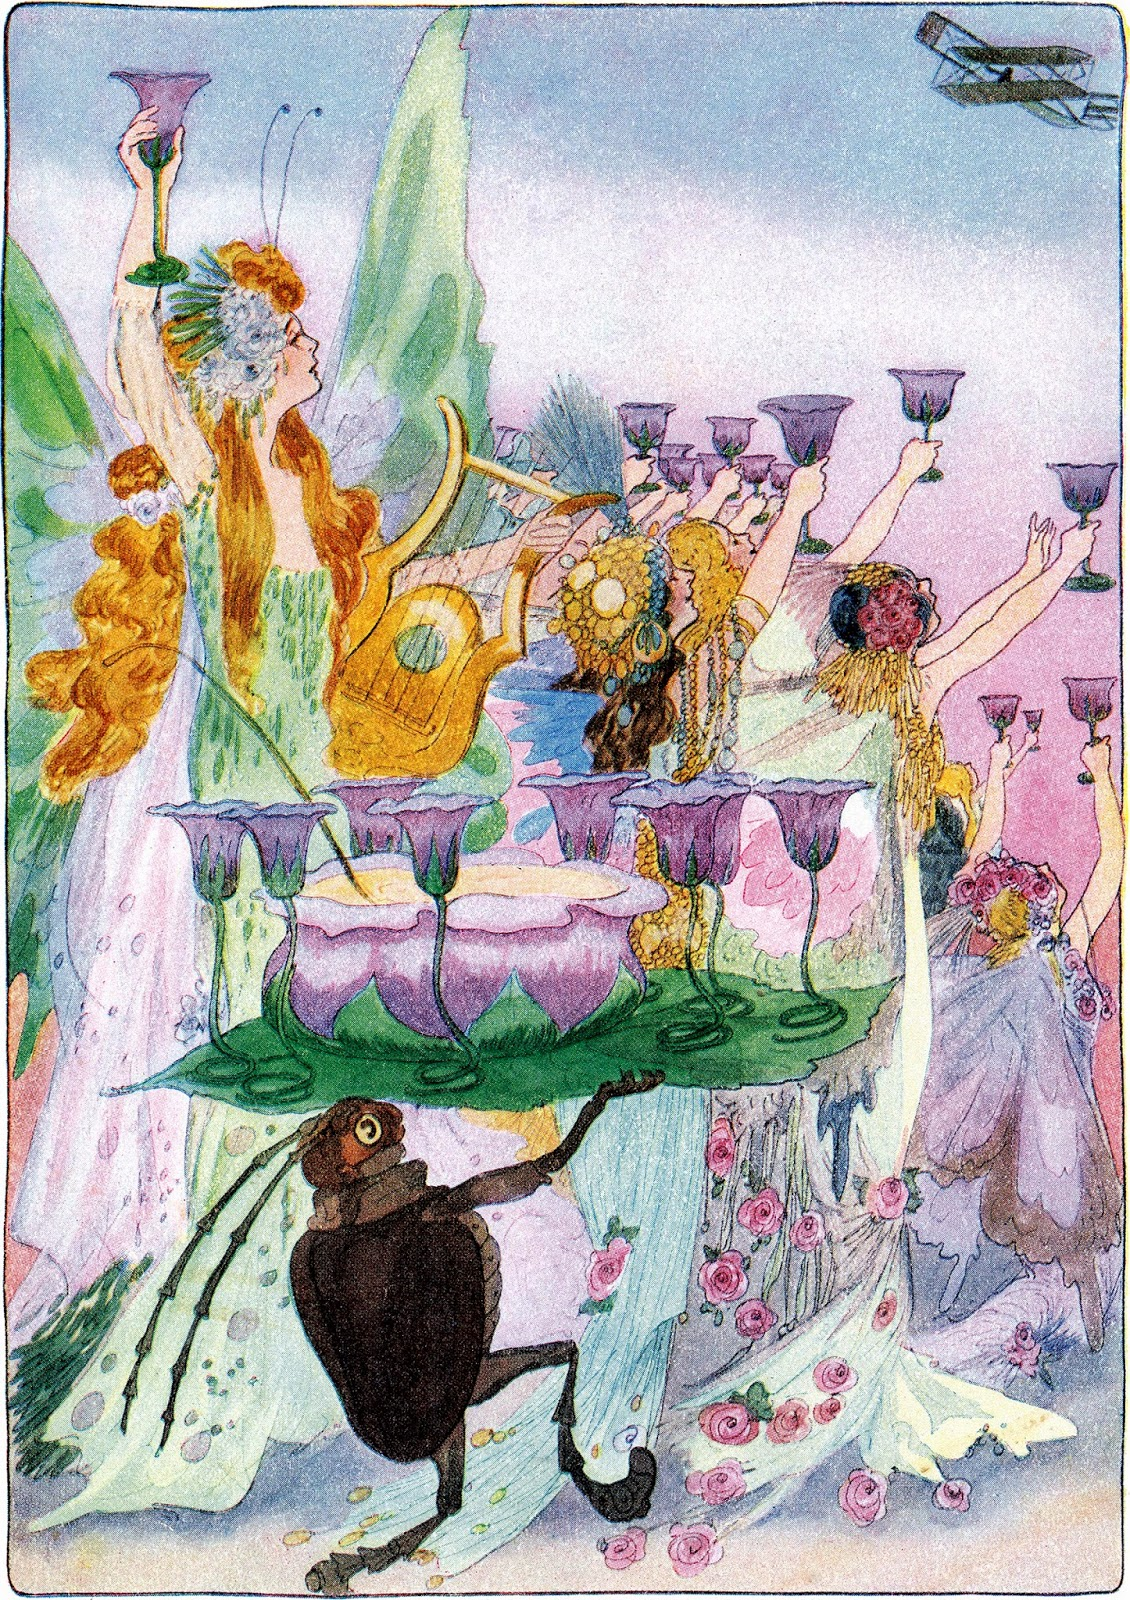 A party of fairies toasting a plane